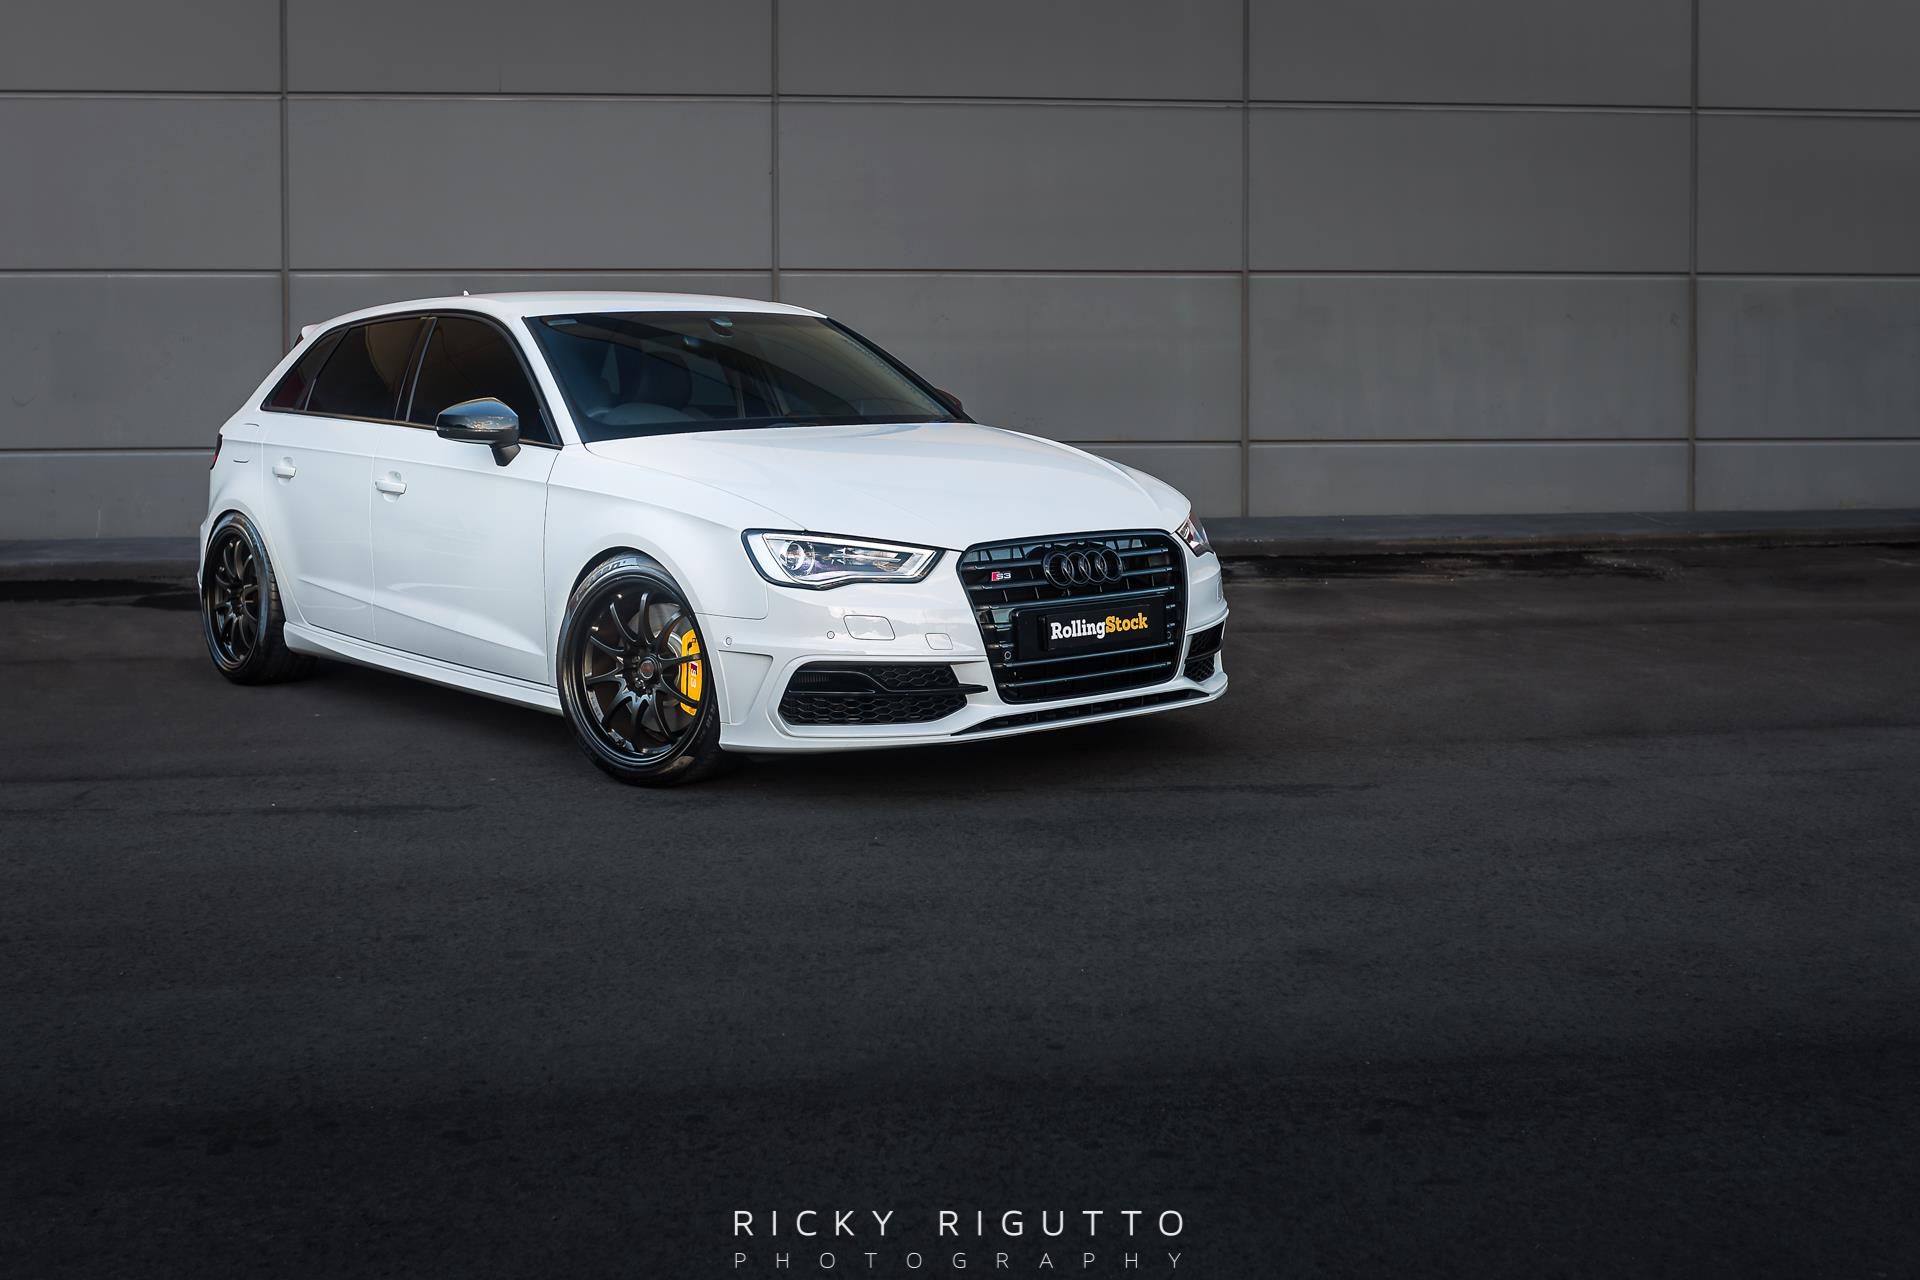 Japanese Wheels Brands >> Audi S3 8V Wheels - RAYS Volk Racing CE28N - Rollingstock